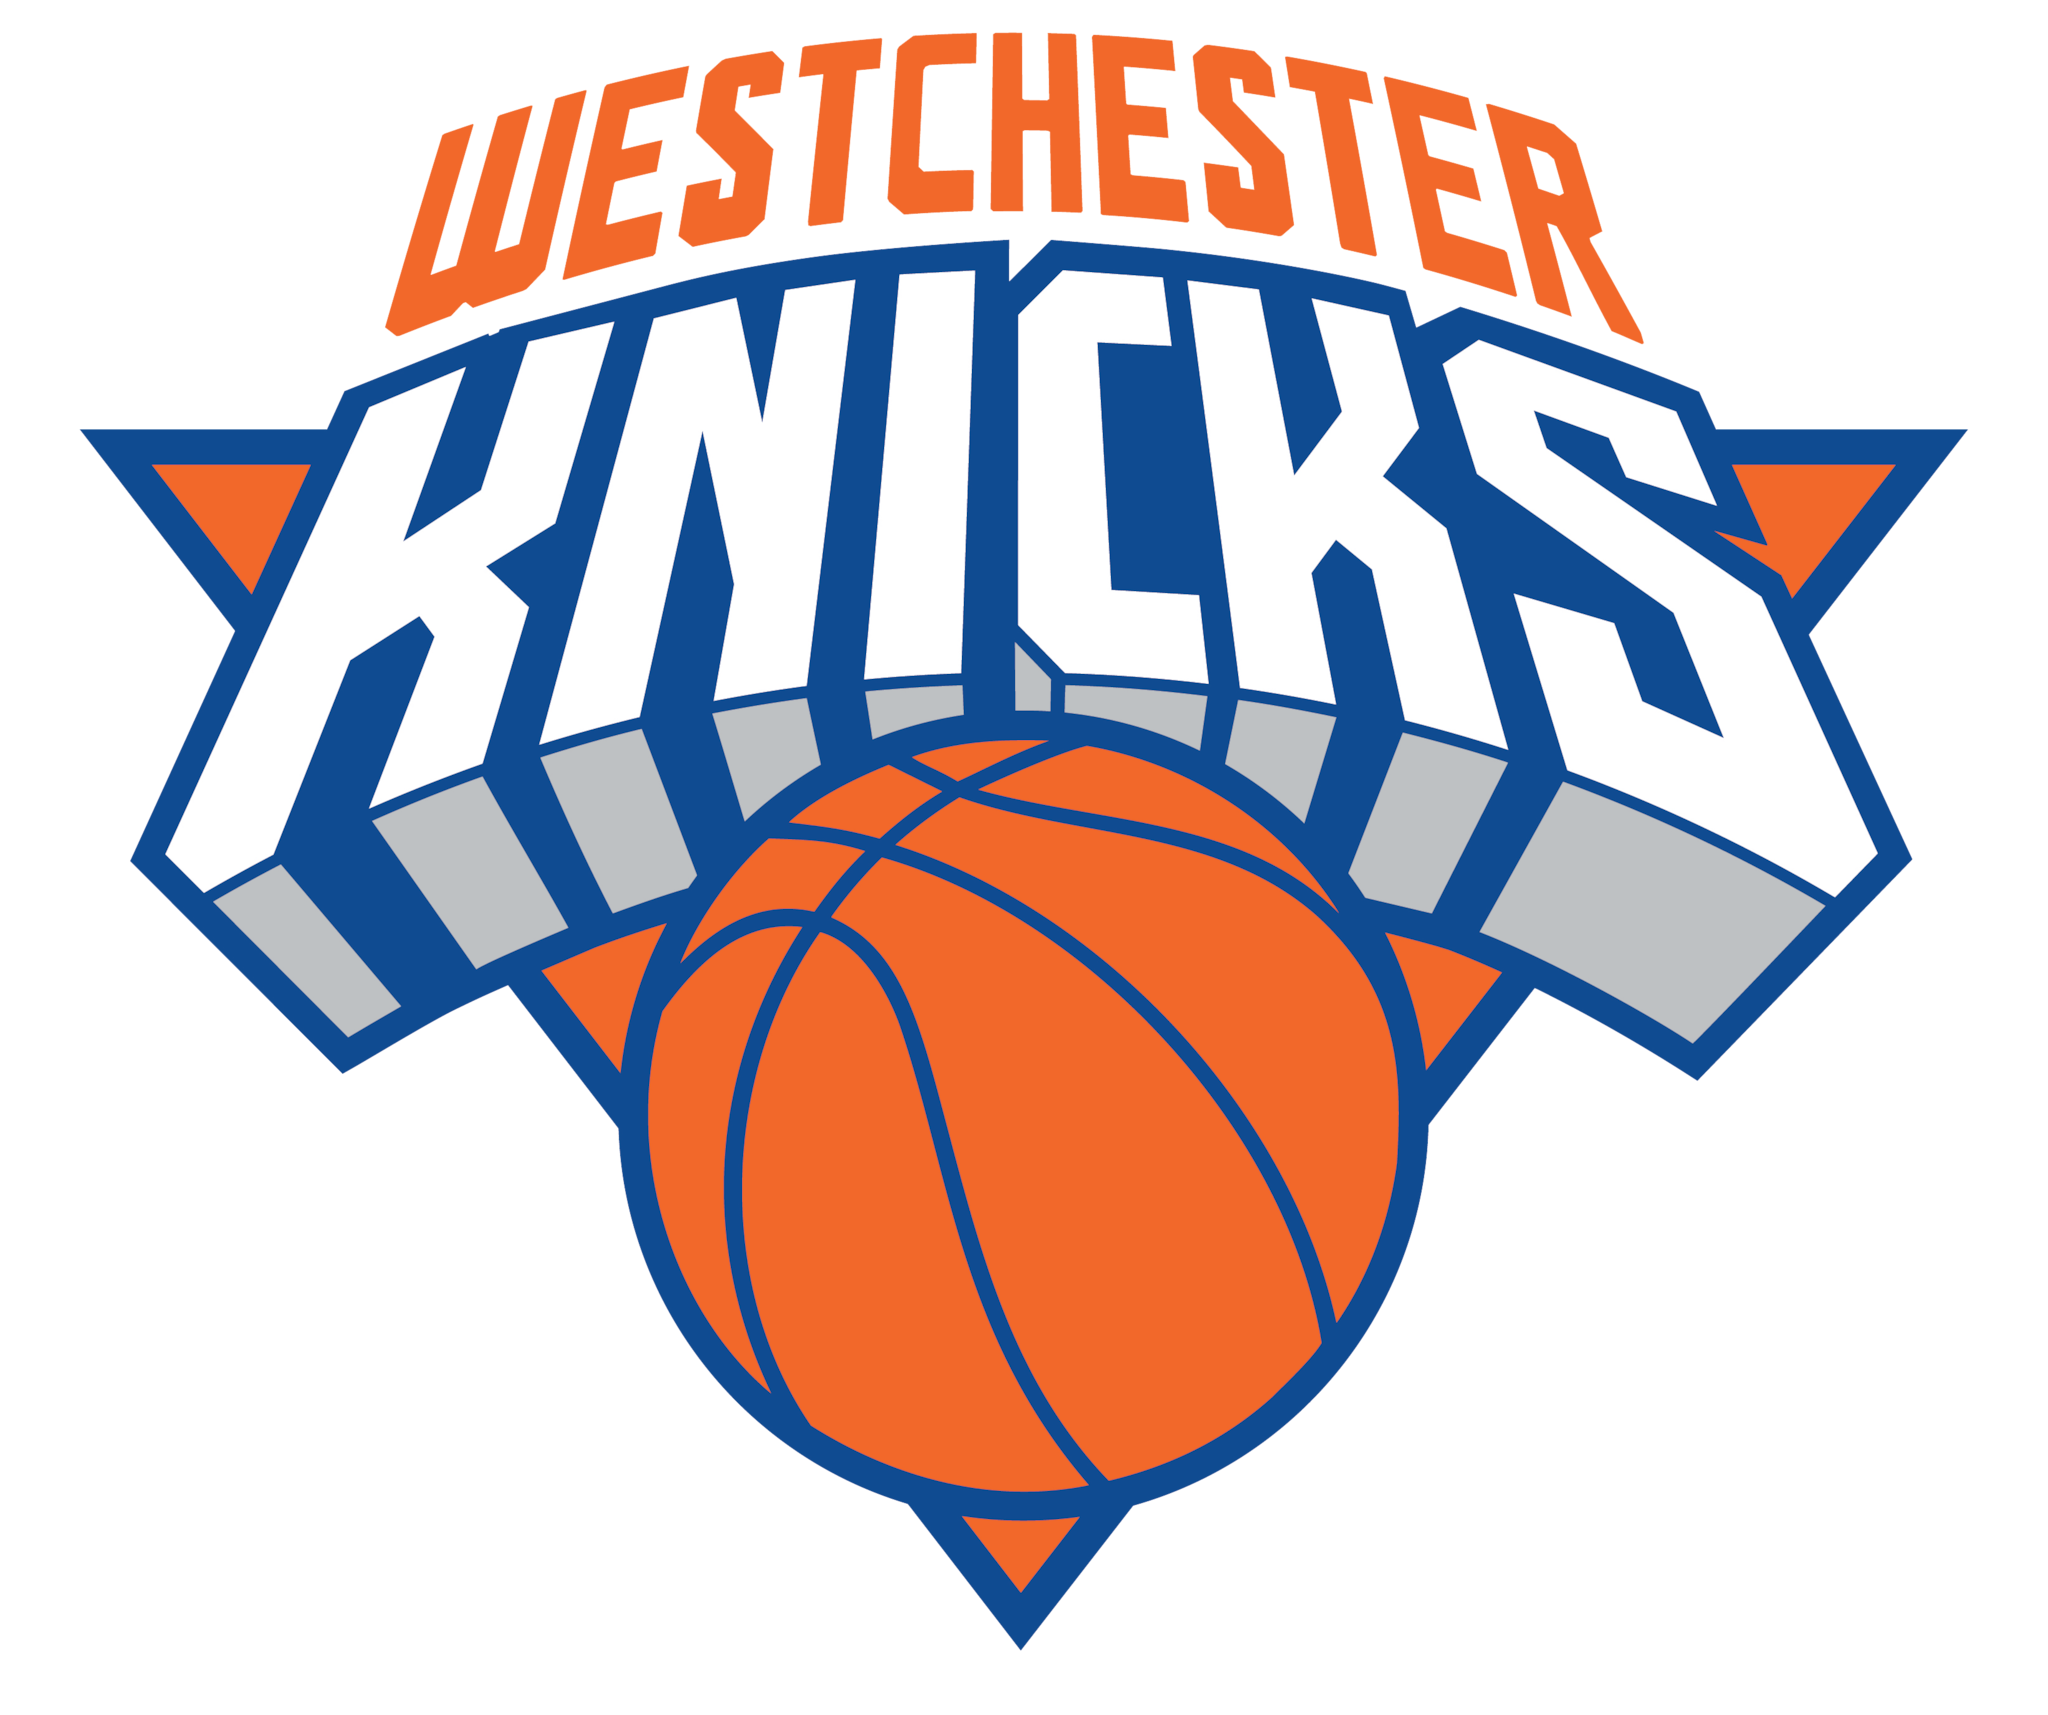 Westchester Knick Alternate Logo